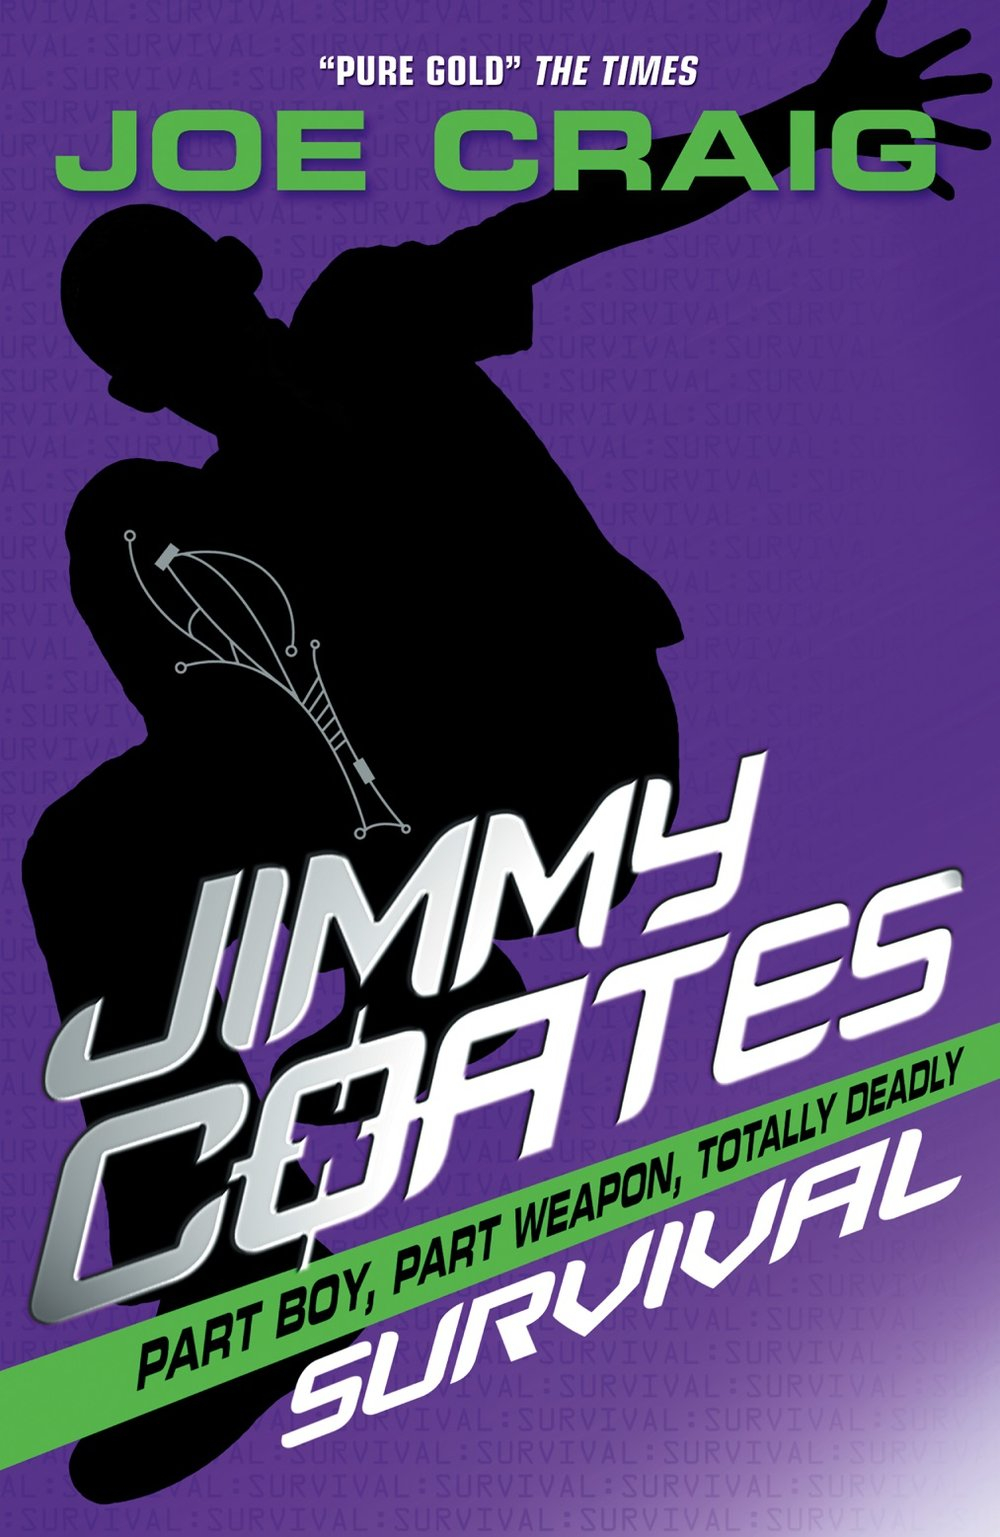 Can Jimmy save his family AND prevent a war? The choice is simple. The decision is deadly.